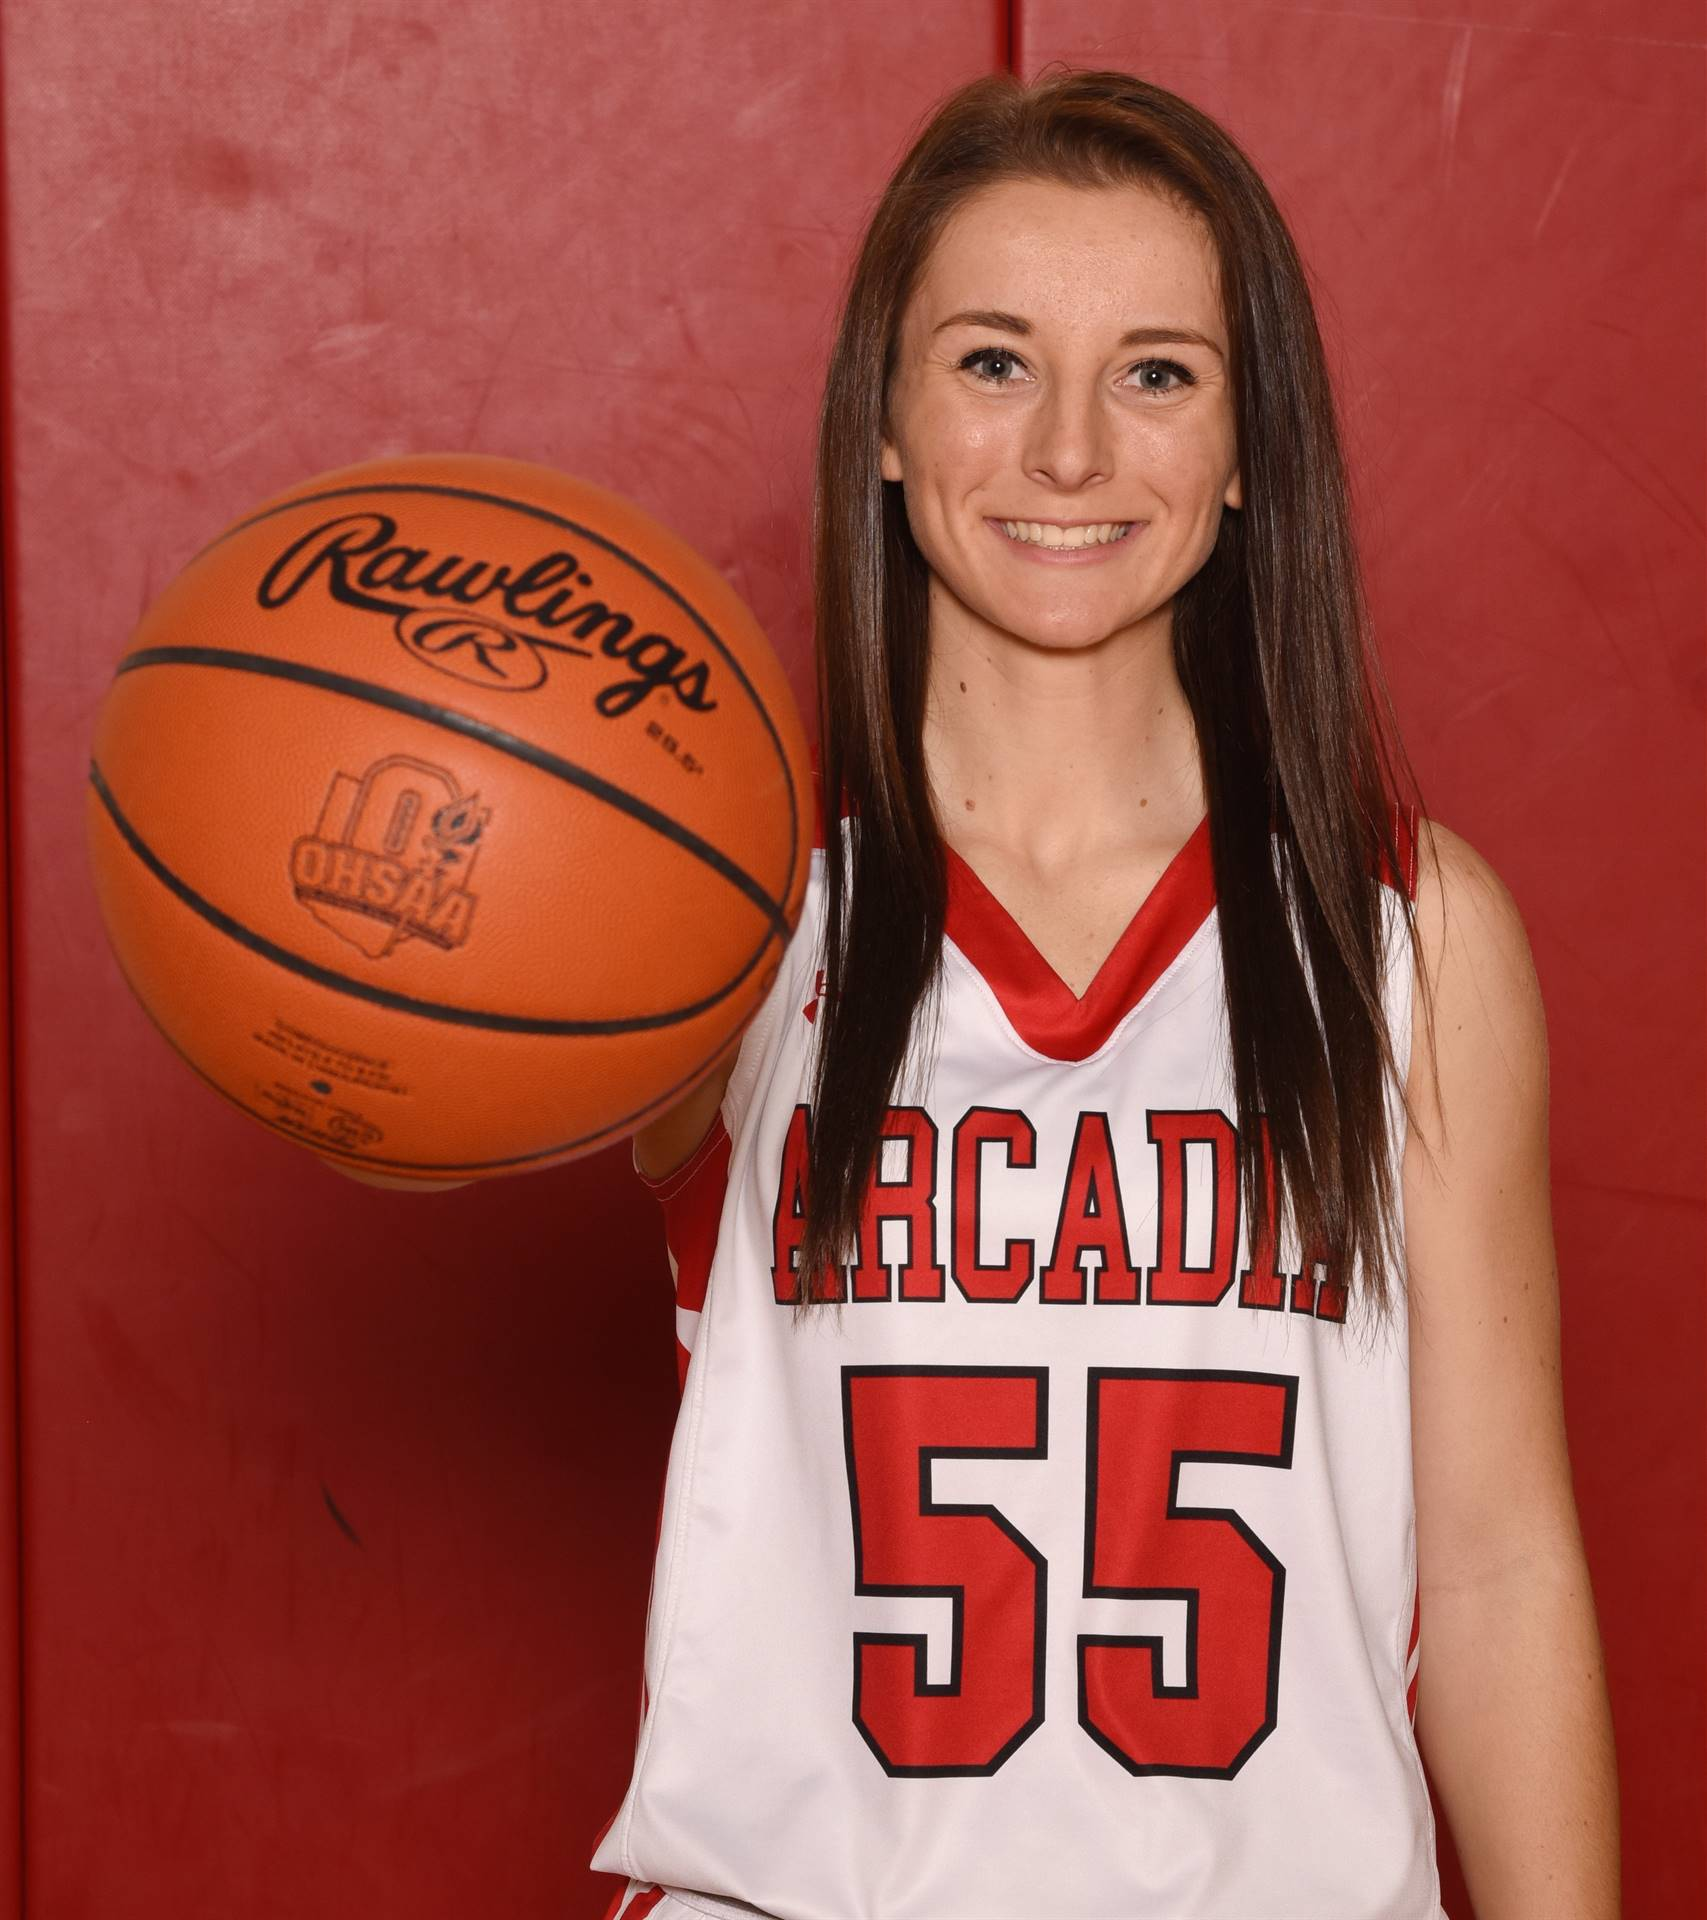 Senior Head Shot Photo - Samantha Watkins - Basketball